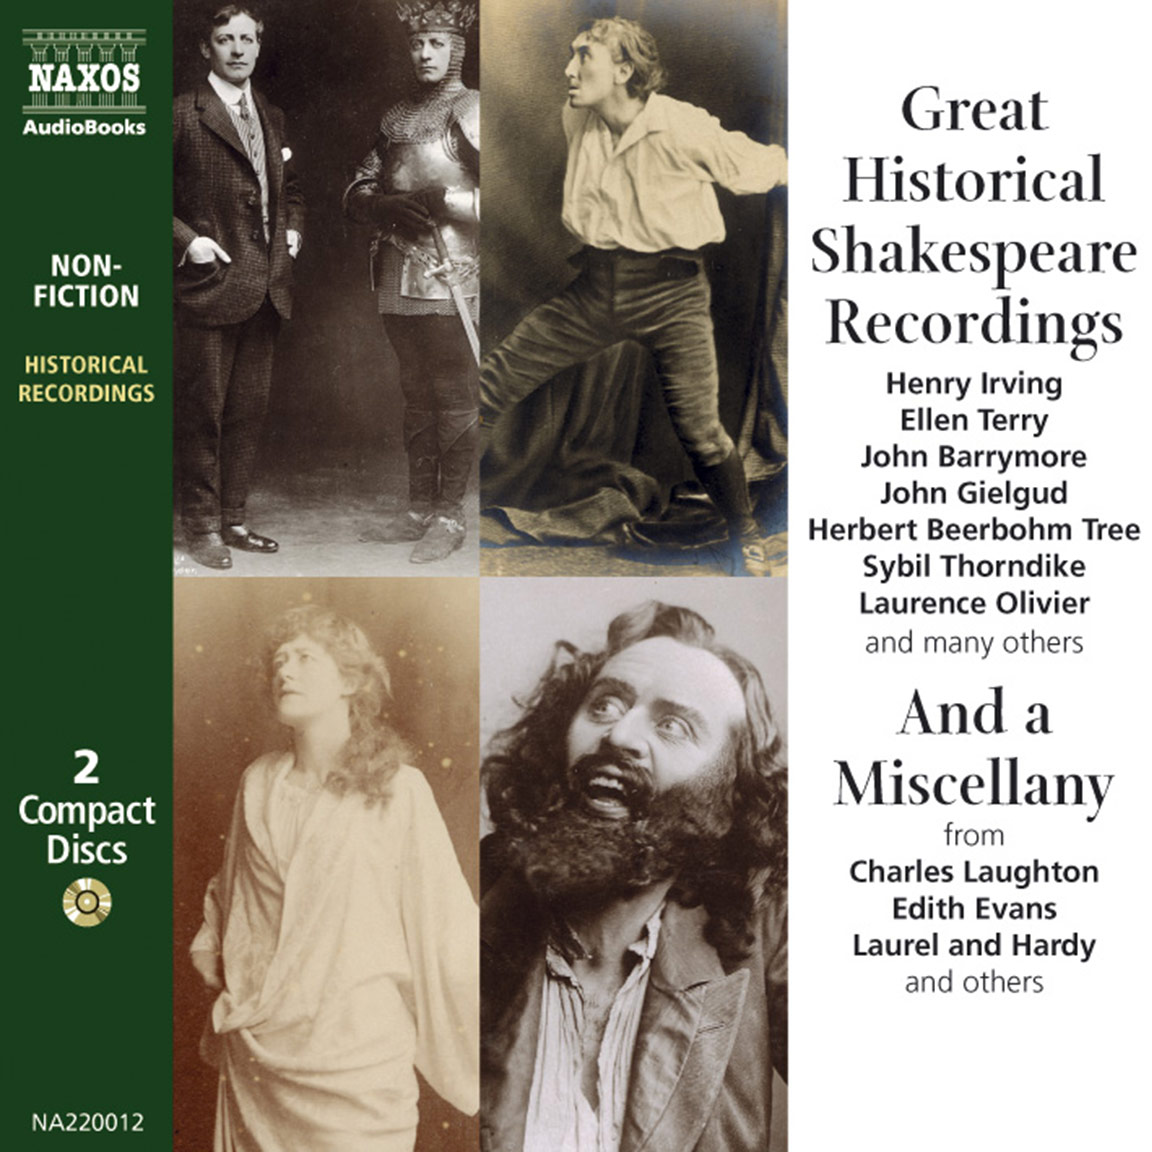 Great Historical Shakespeare Recordings (selections)